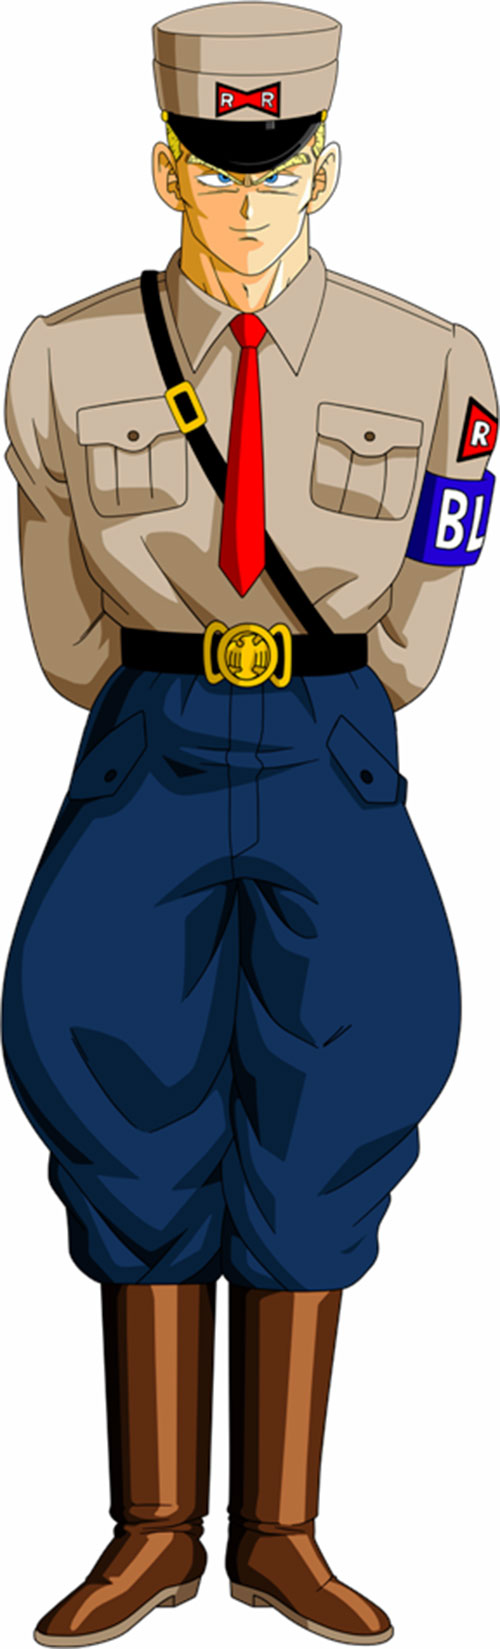 General Blue (Goku enemy) (Dragon Ball)